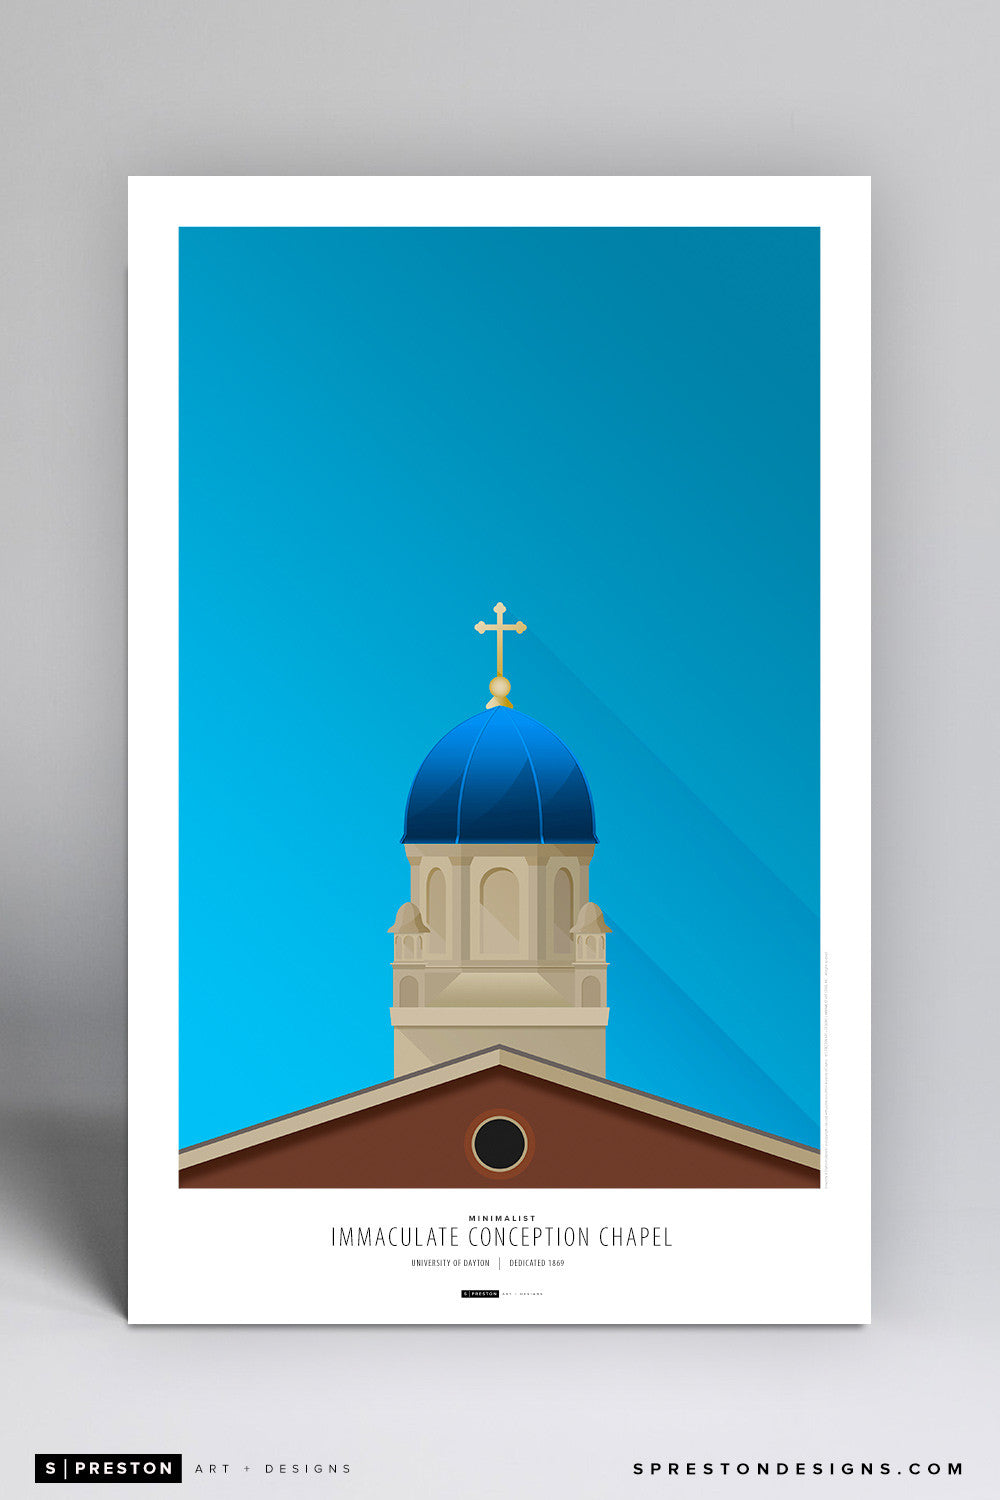 Minimalist Immaculate Conception Chapel Poster Print University of Dayton - S Preston